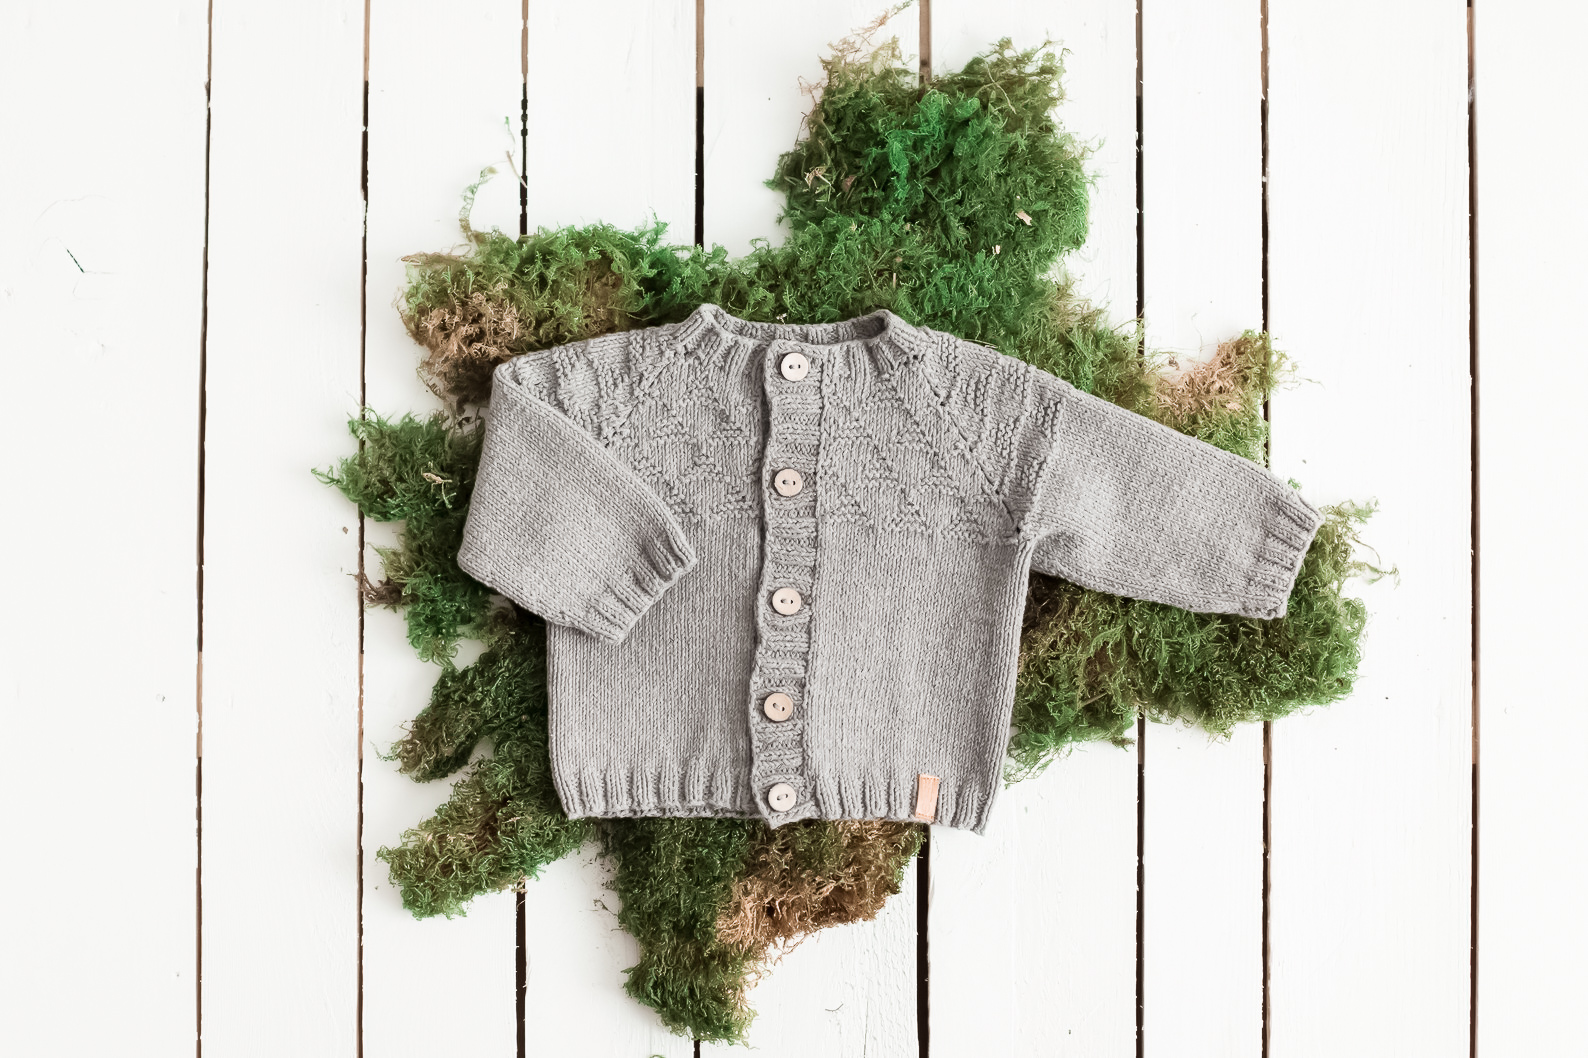 Knitted baby sweater.jpg